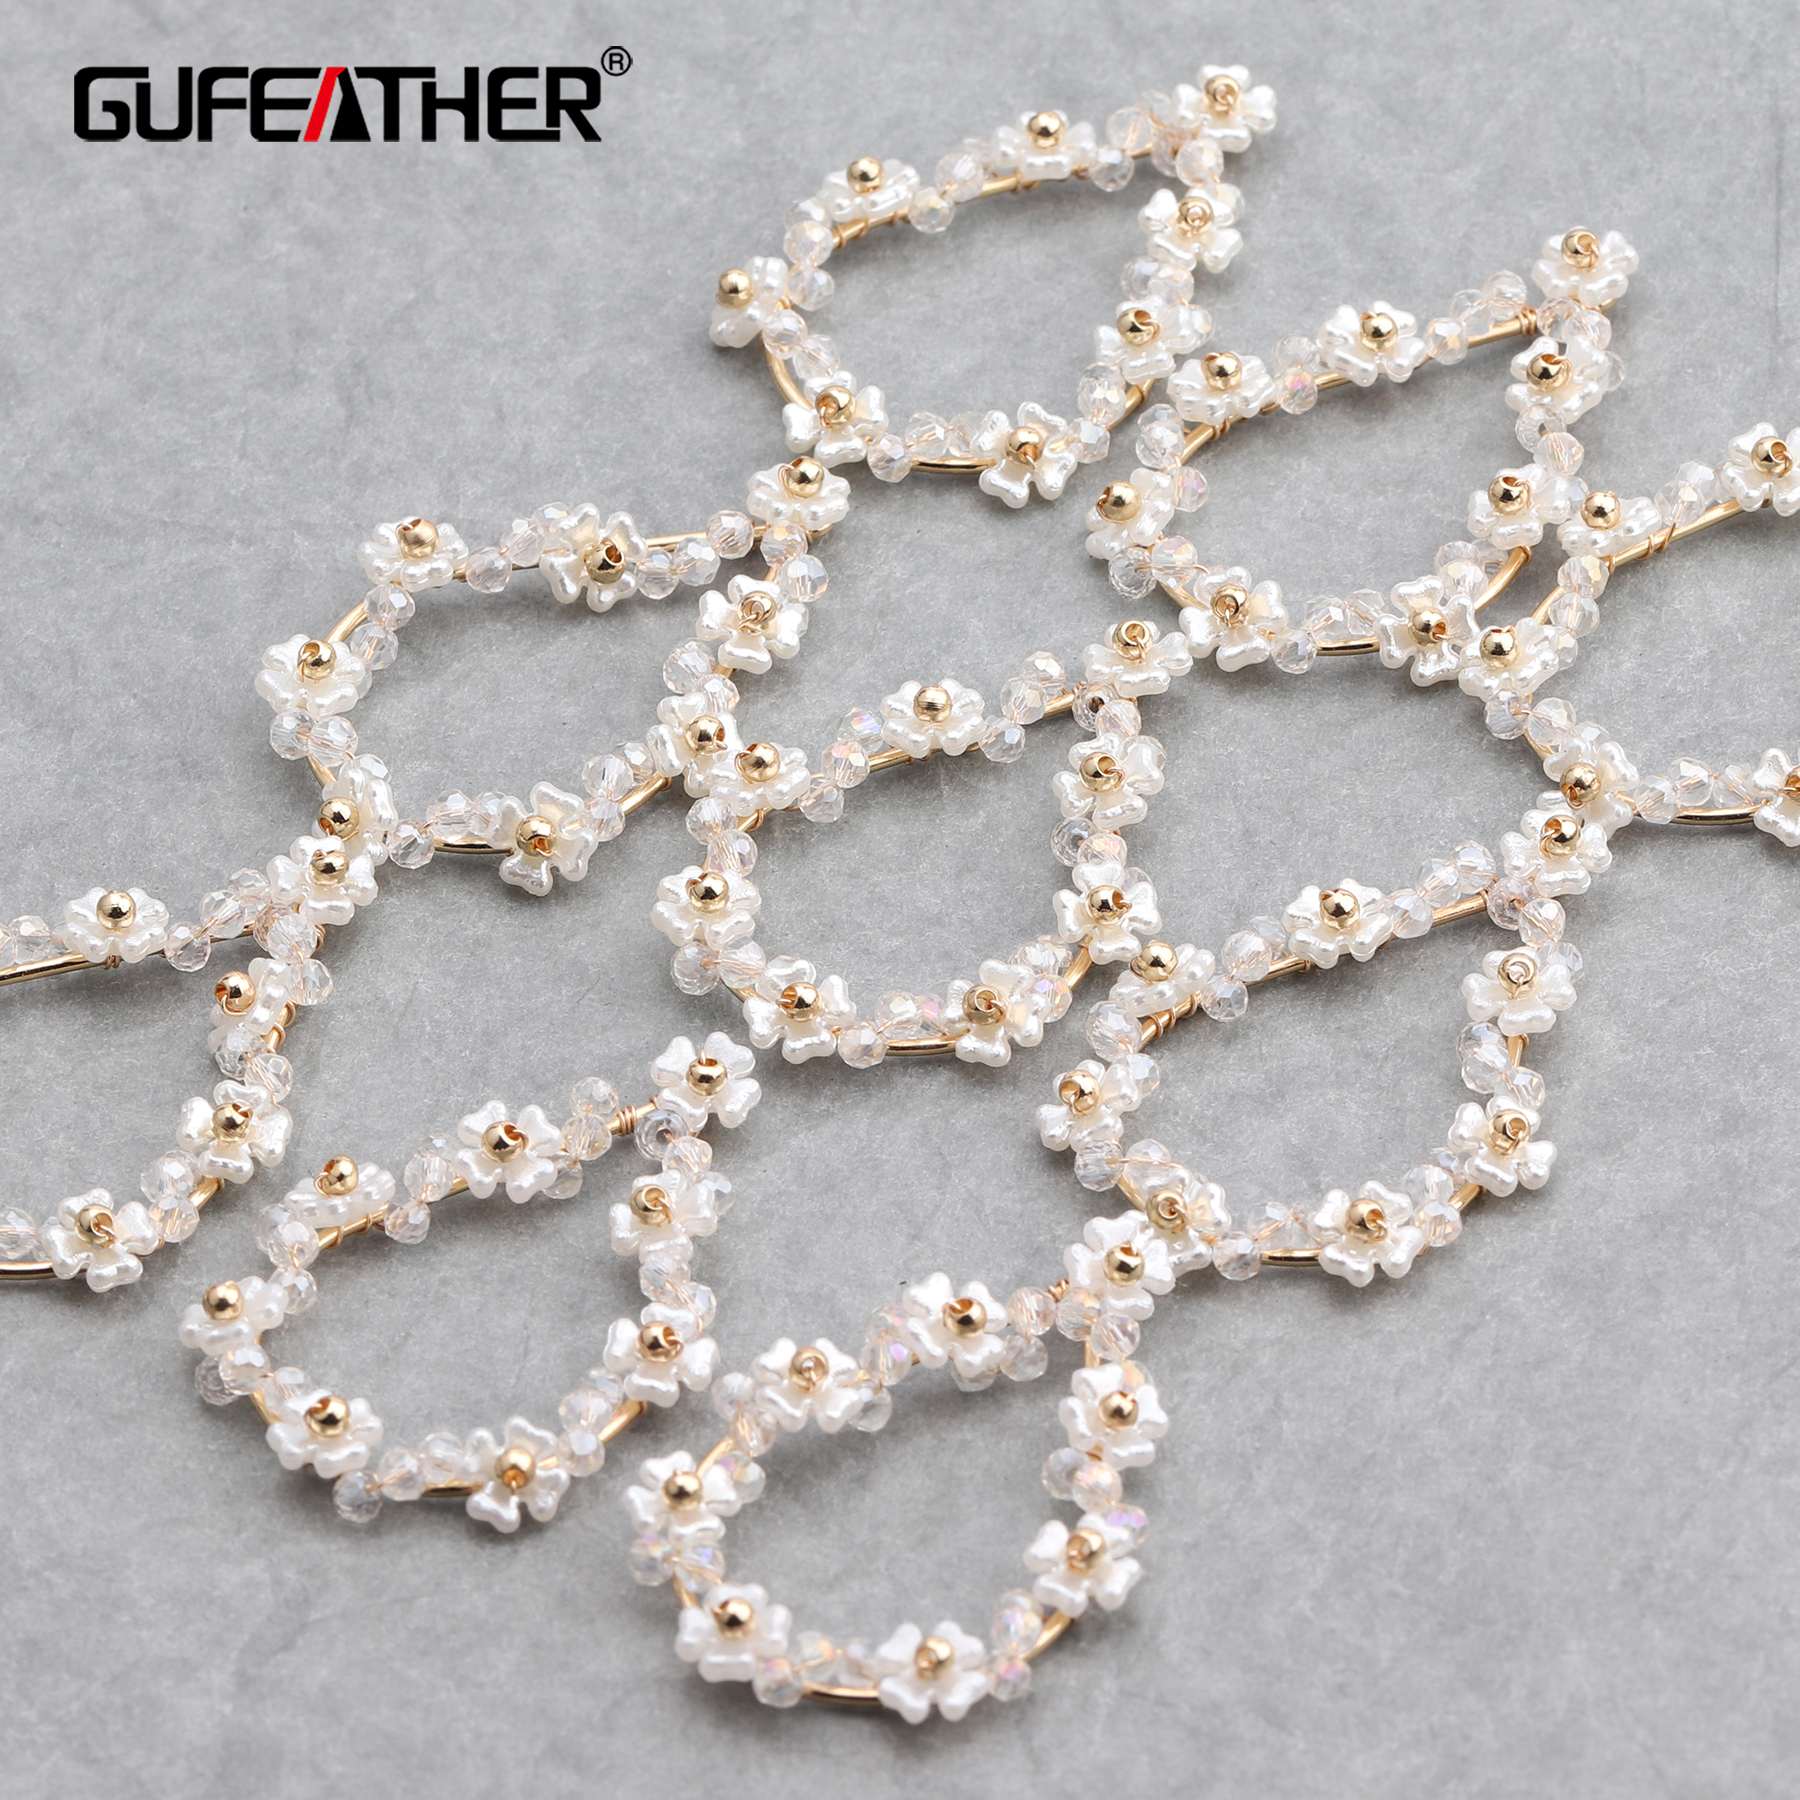 GUFEATHER M655,jewelry Accessories,diy Pendants,hand Made,copper Metal,charms,jewelry Making,diy Earrings,6pcs/lot